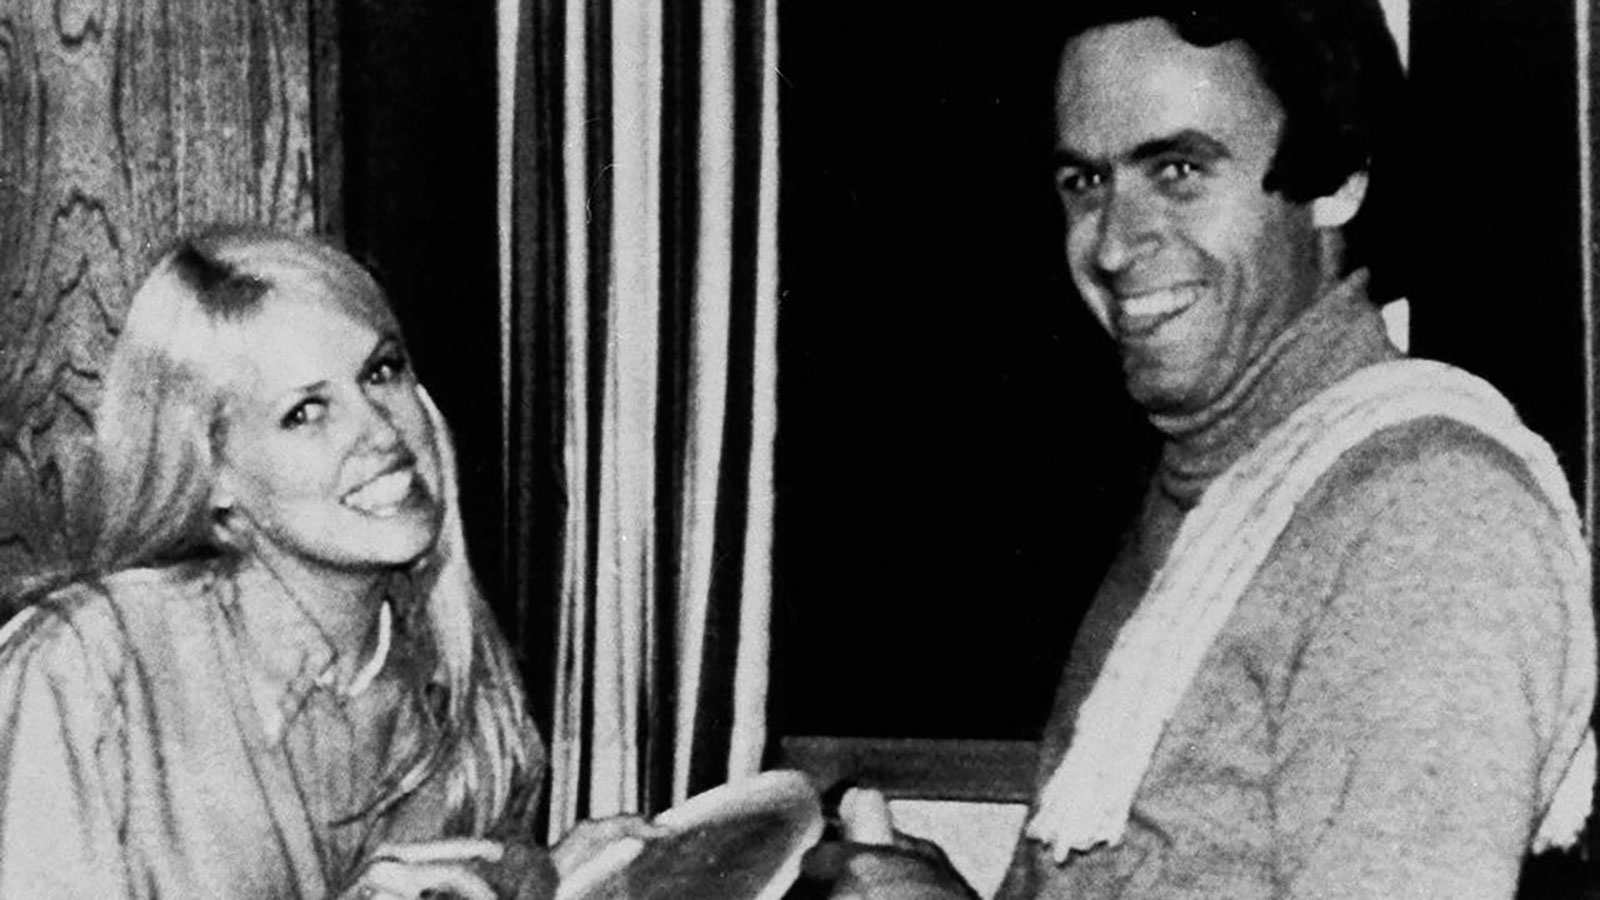 Photos: The case of Ted Bundy